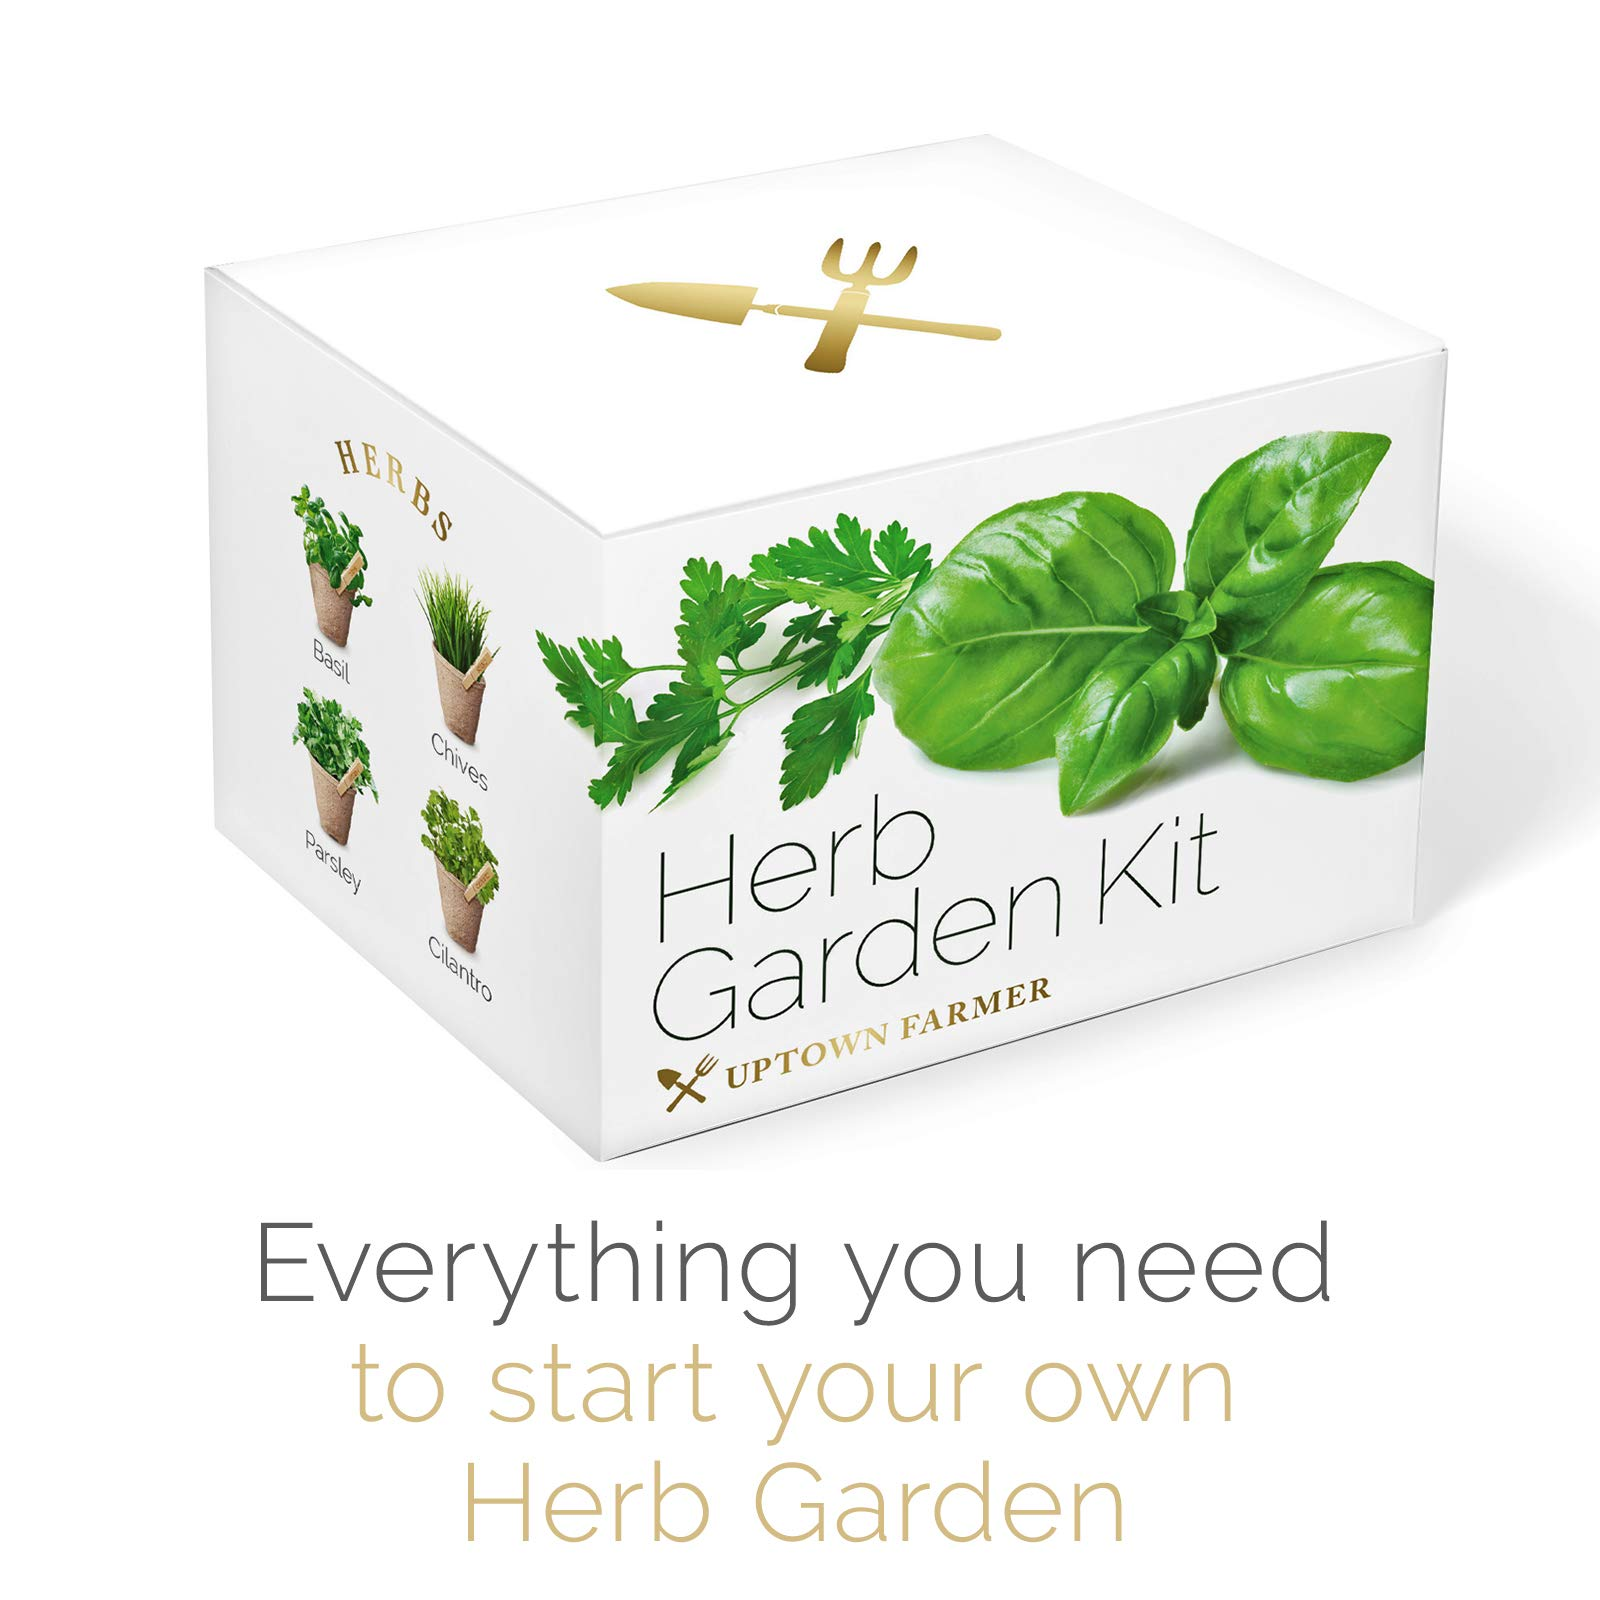 Indoor Herb Garden Starter Kit - Growing Seed Set Gardening Gifts for Women or Men with 100% Non GMO Heirloom Seeds (Basil, Cilantro, Parsley, Chives) Planter Peat Pots, Peg Markers, Scissors + Soil by Uptown Farmer (Image #7)